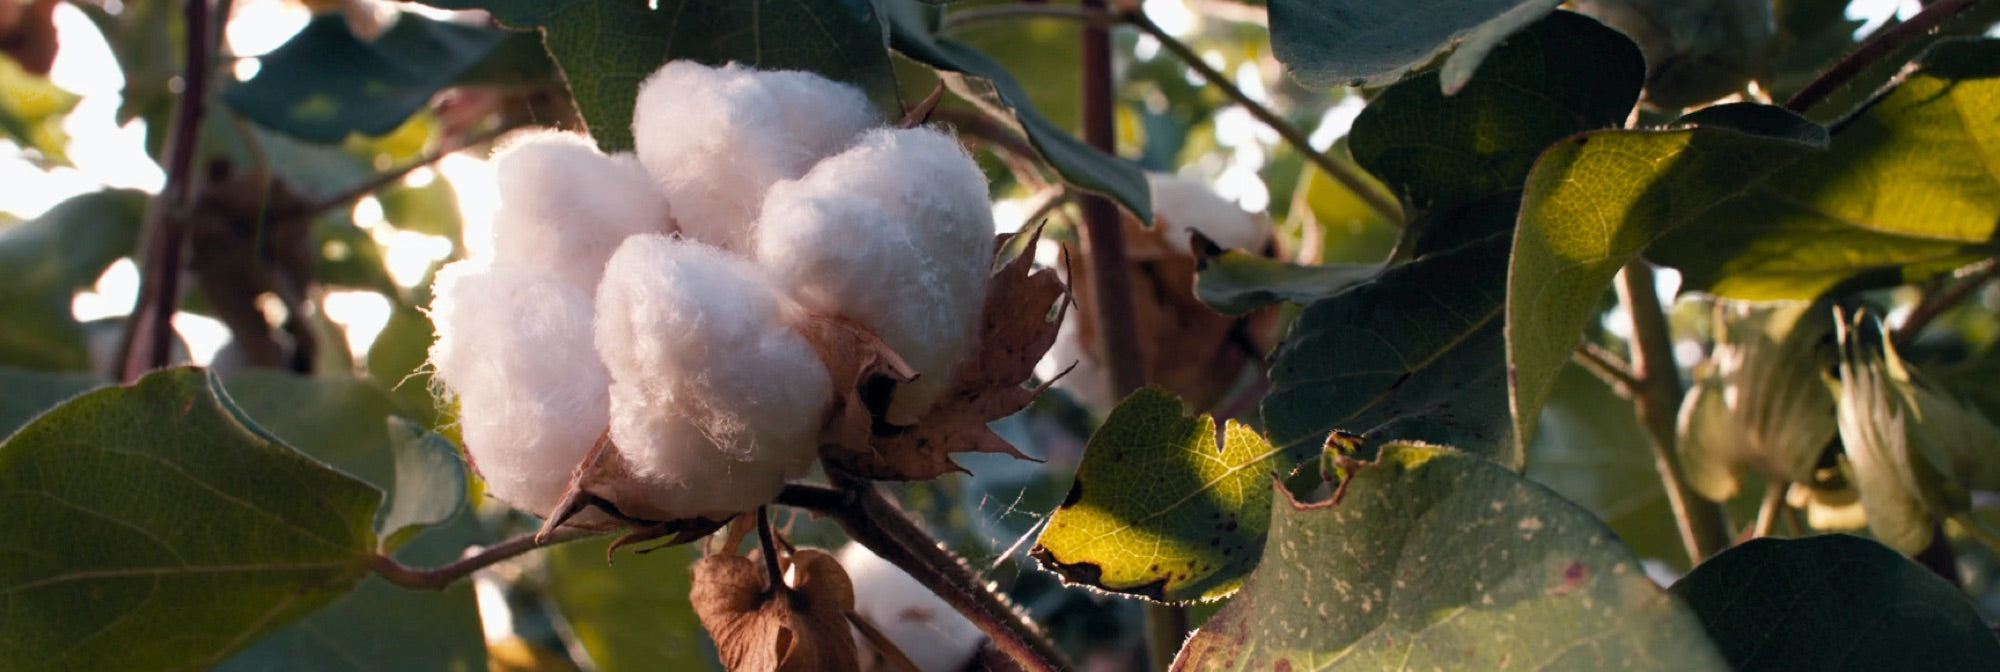 A Matter Of Fabrics: Organic Cotton